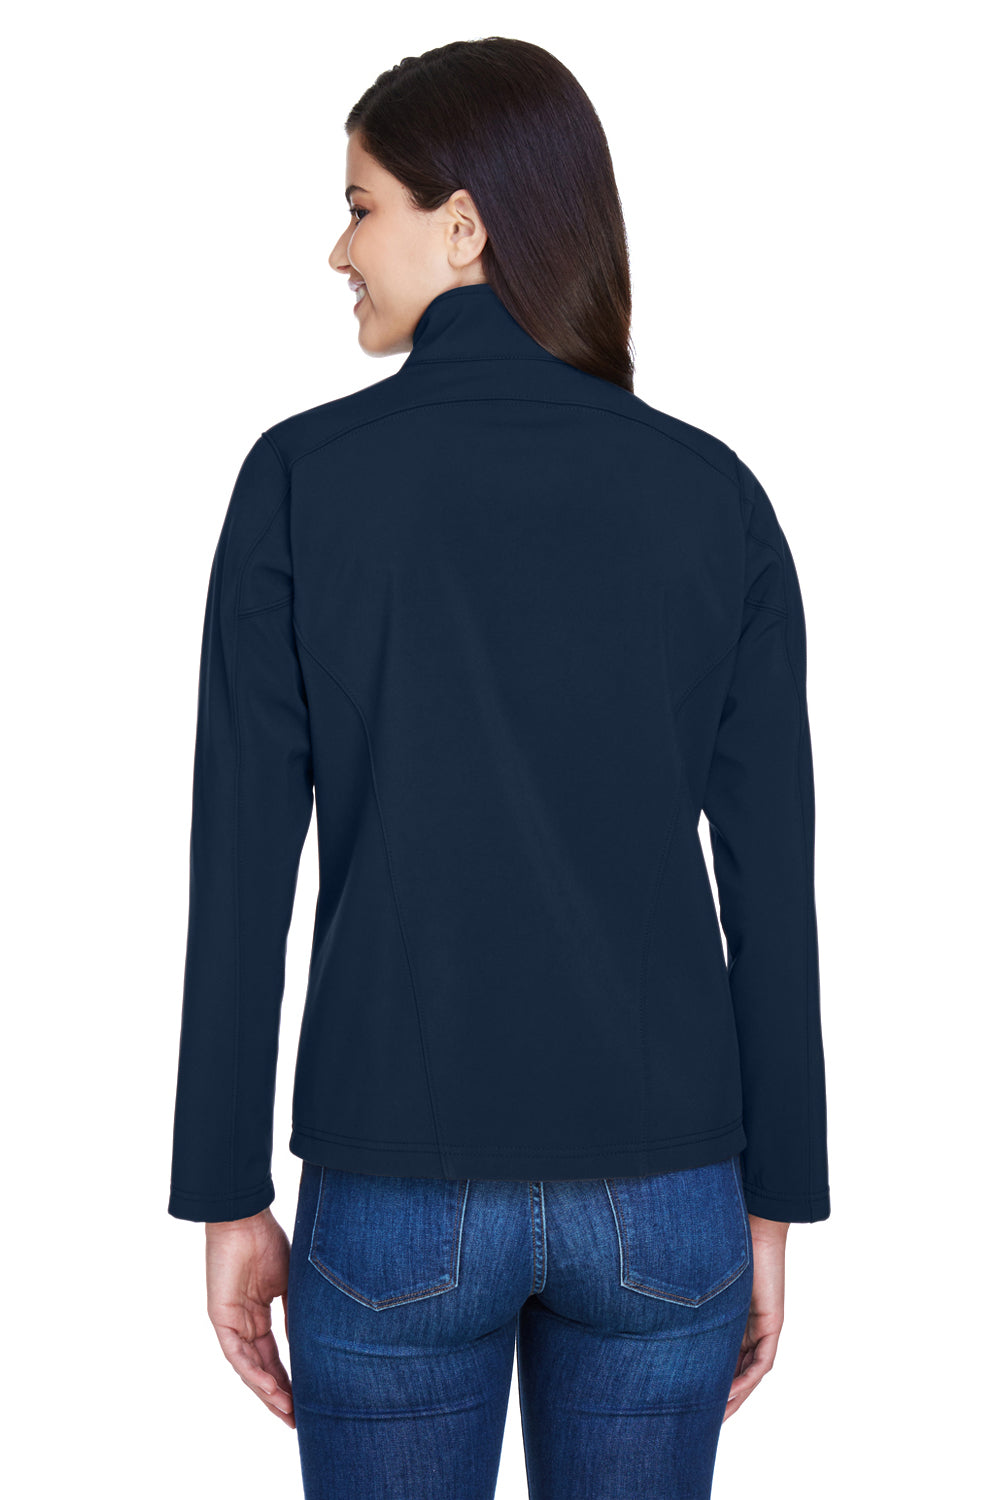 Core 365 78184 Womens Cruise Water Resistant Full Zip Jacket Navy Blue Back